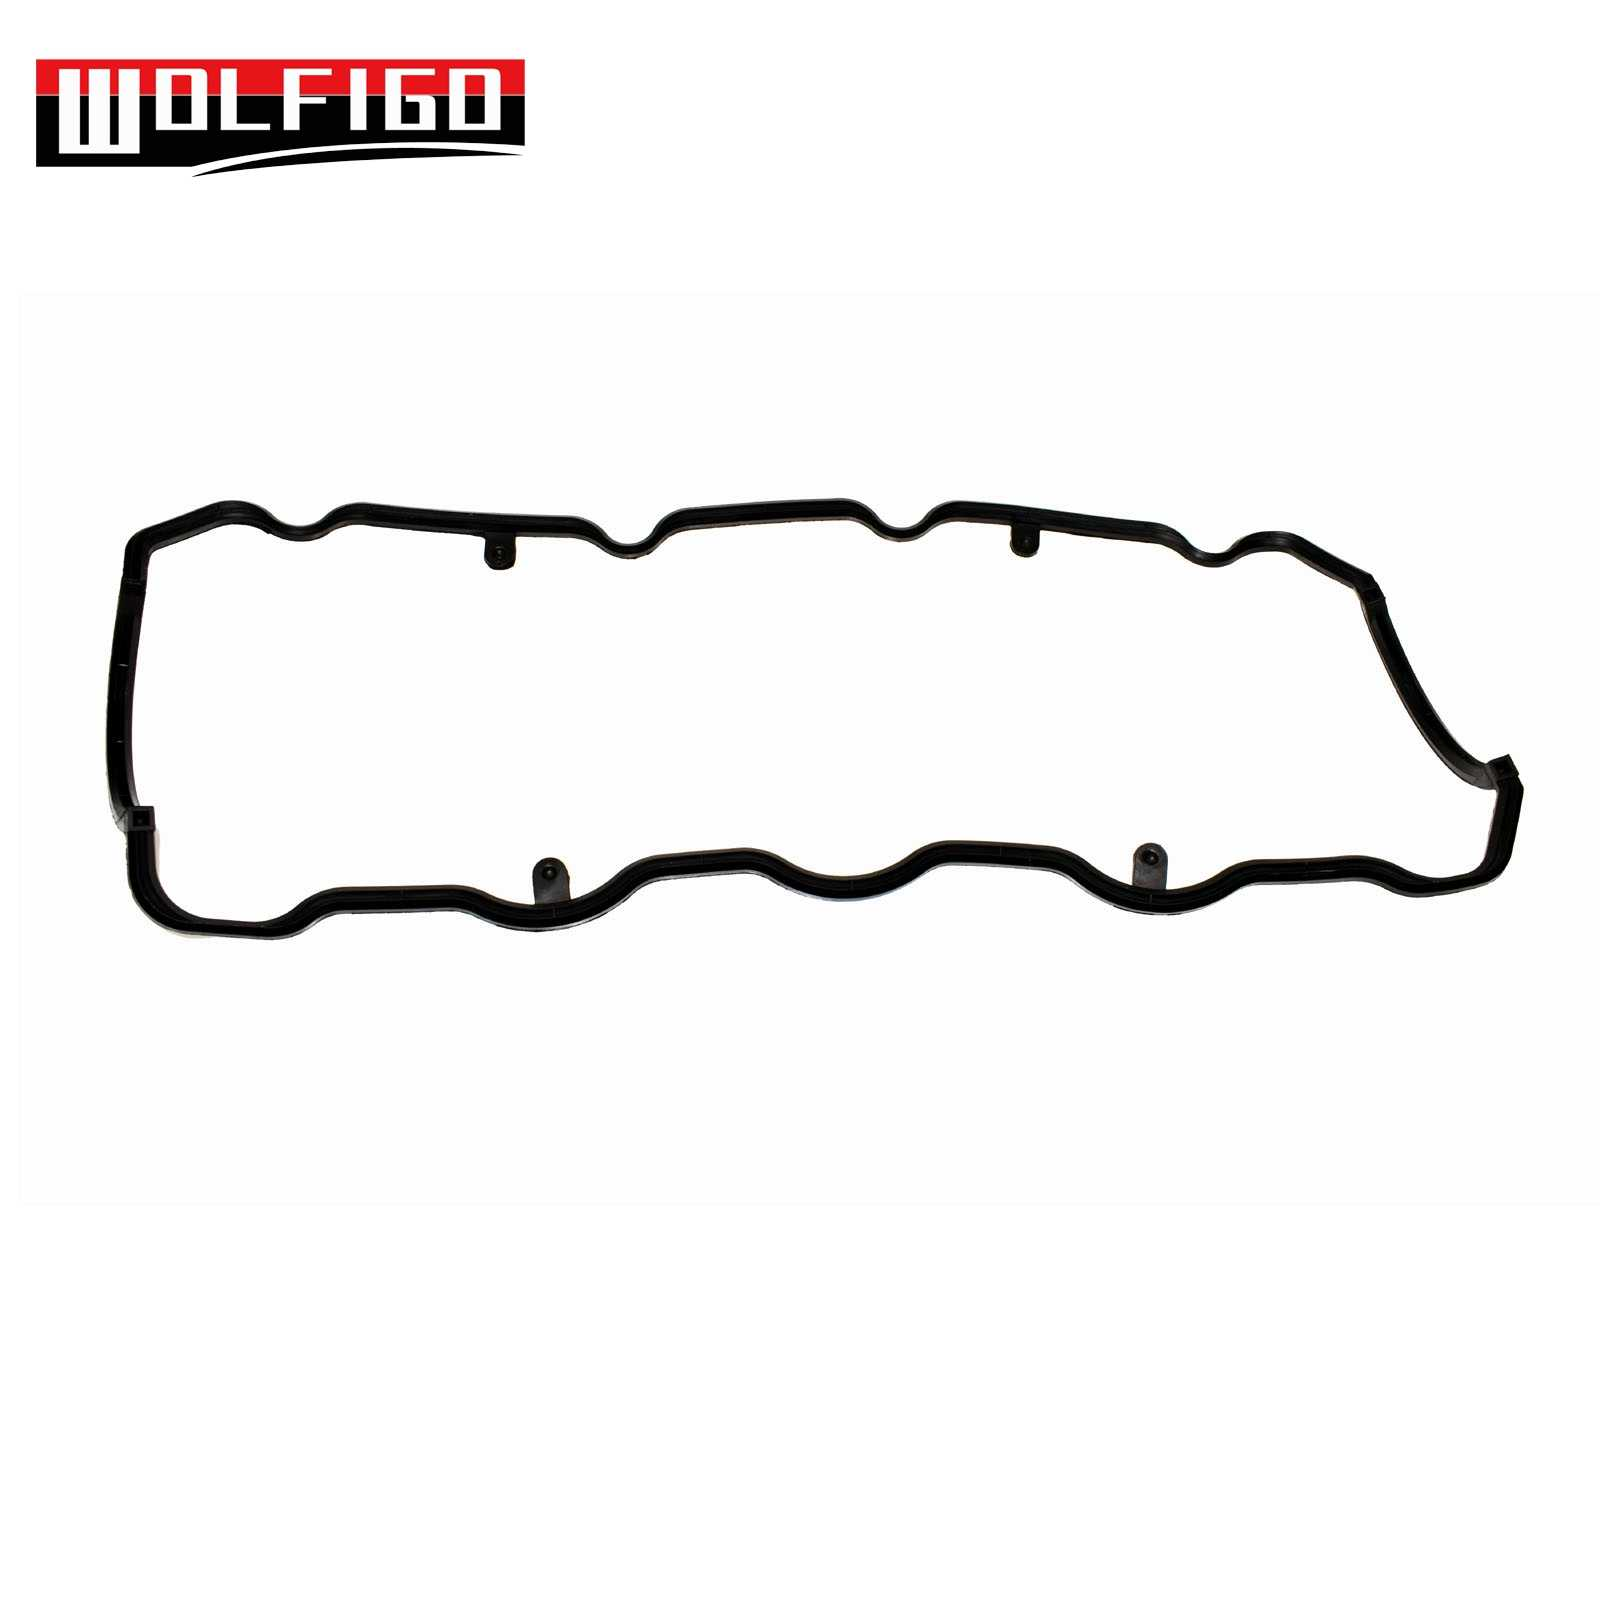 wolfigo for vw beetle golf jetta tdi 1 9 engine valve cover gasket 038103469e 038 103 [ 1600 x 1600 Pixel ]